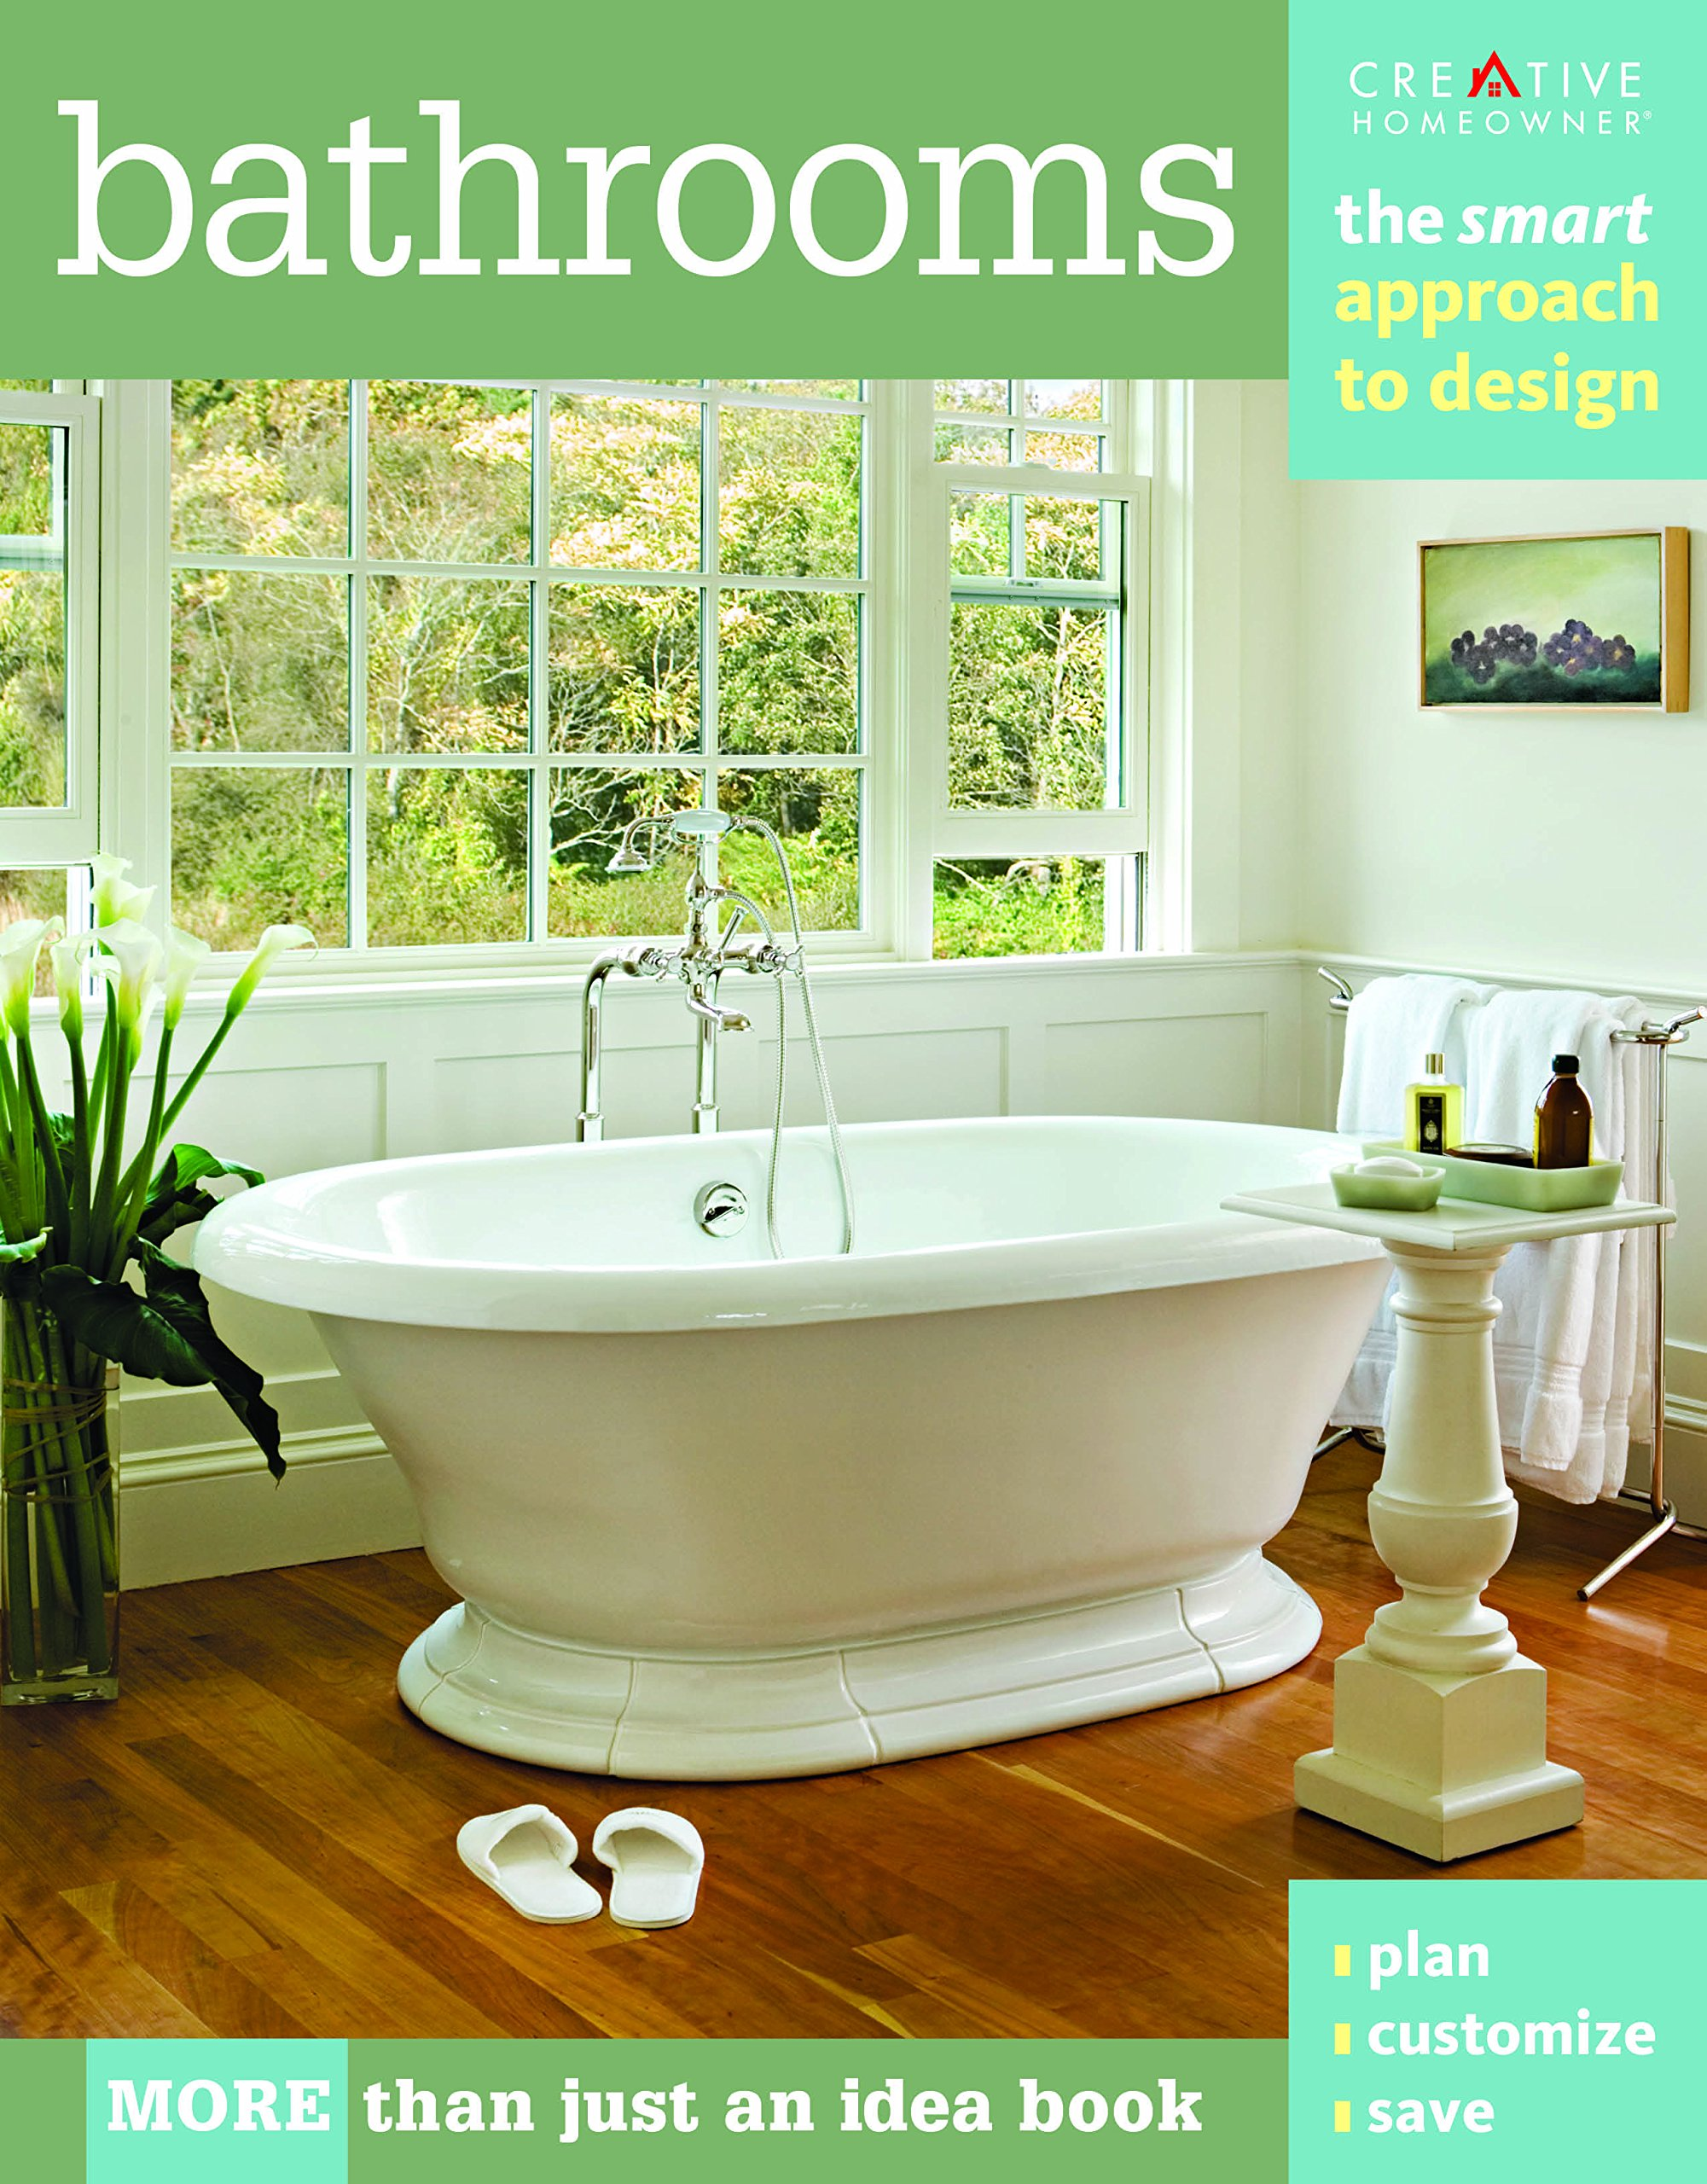 bathrooms the smart approach to design home decorating editors bathrooms the smart approach to design home decorating editors of creative homeowner home decorating bathroom how to 9781580114745 amazon com